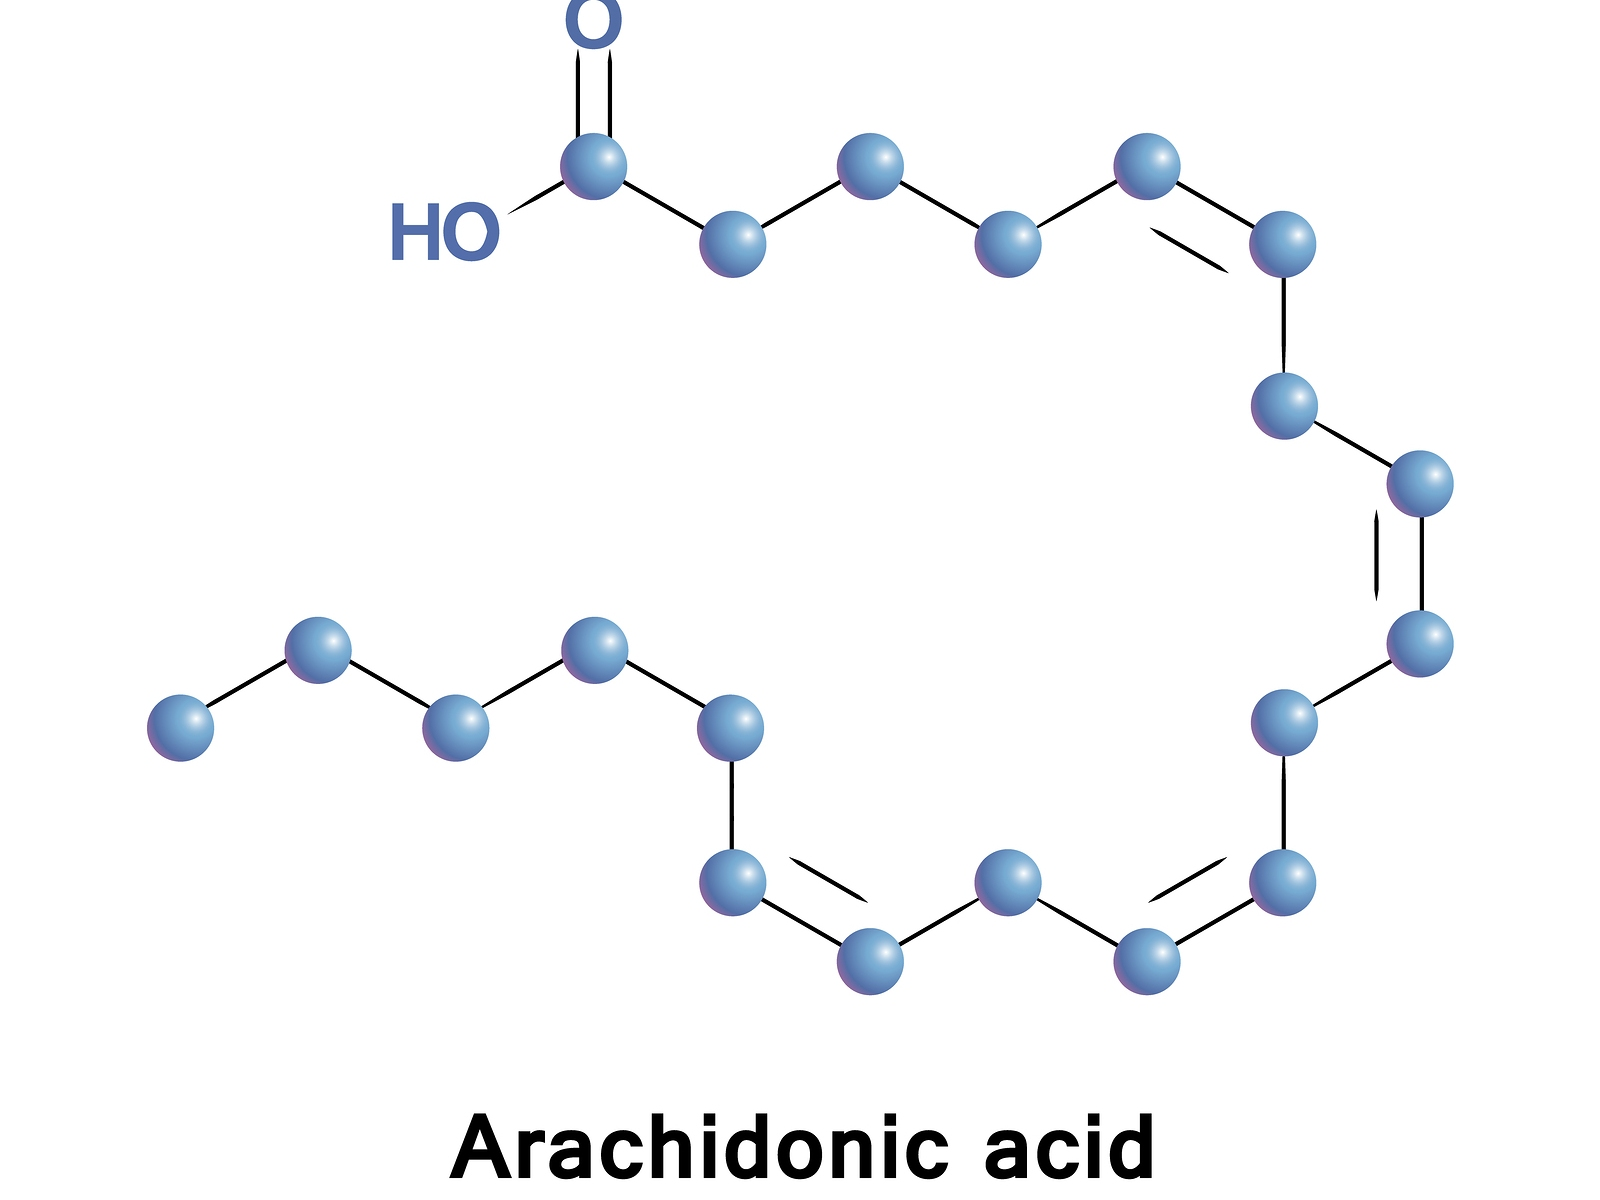 Arachidonic acid healthmatters.io meaning high low treatment animal products vegan diet